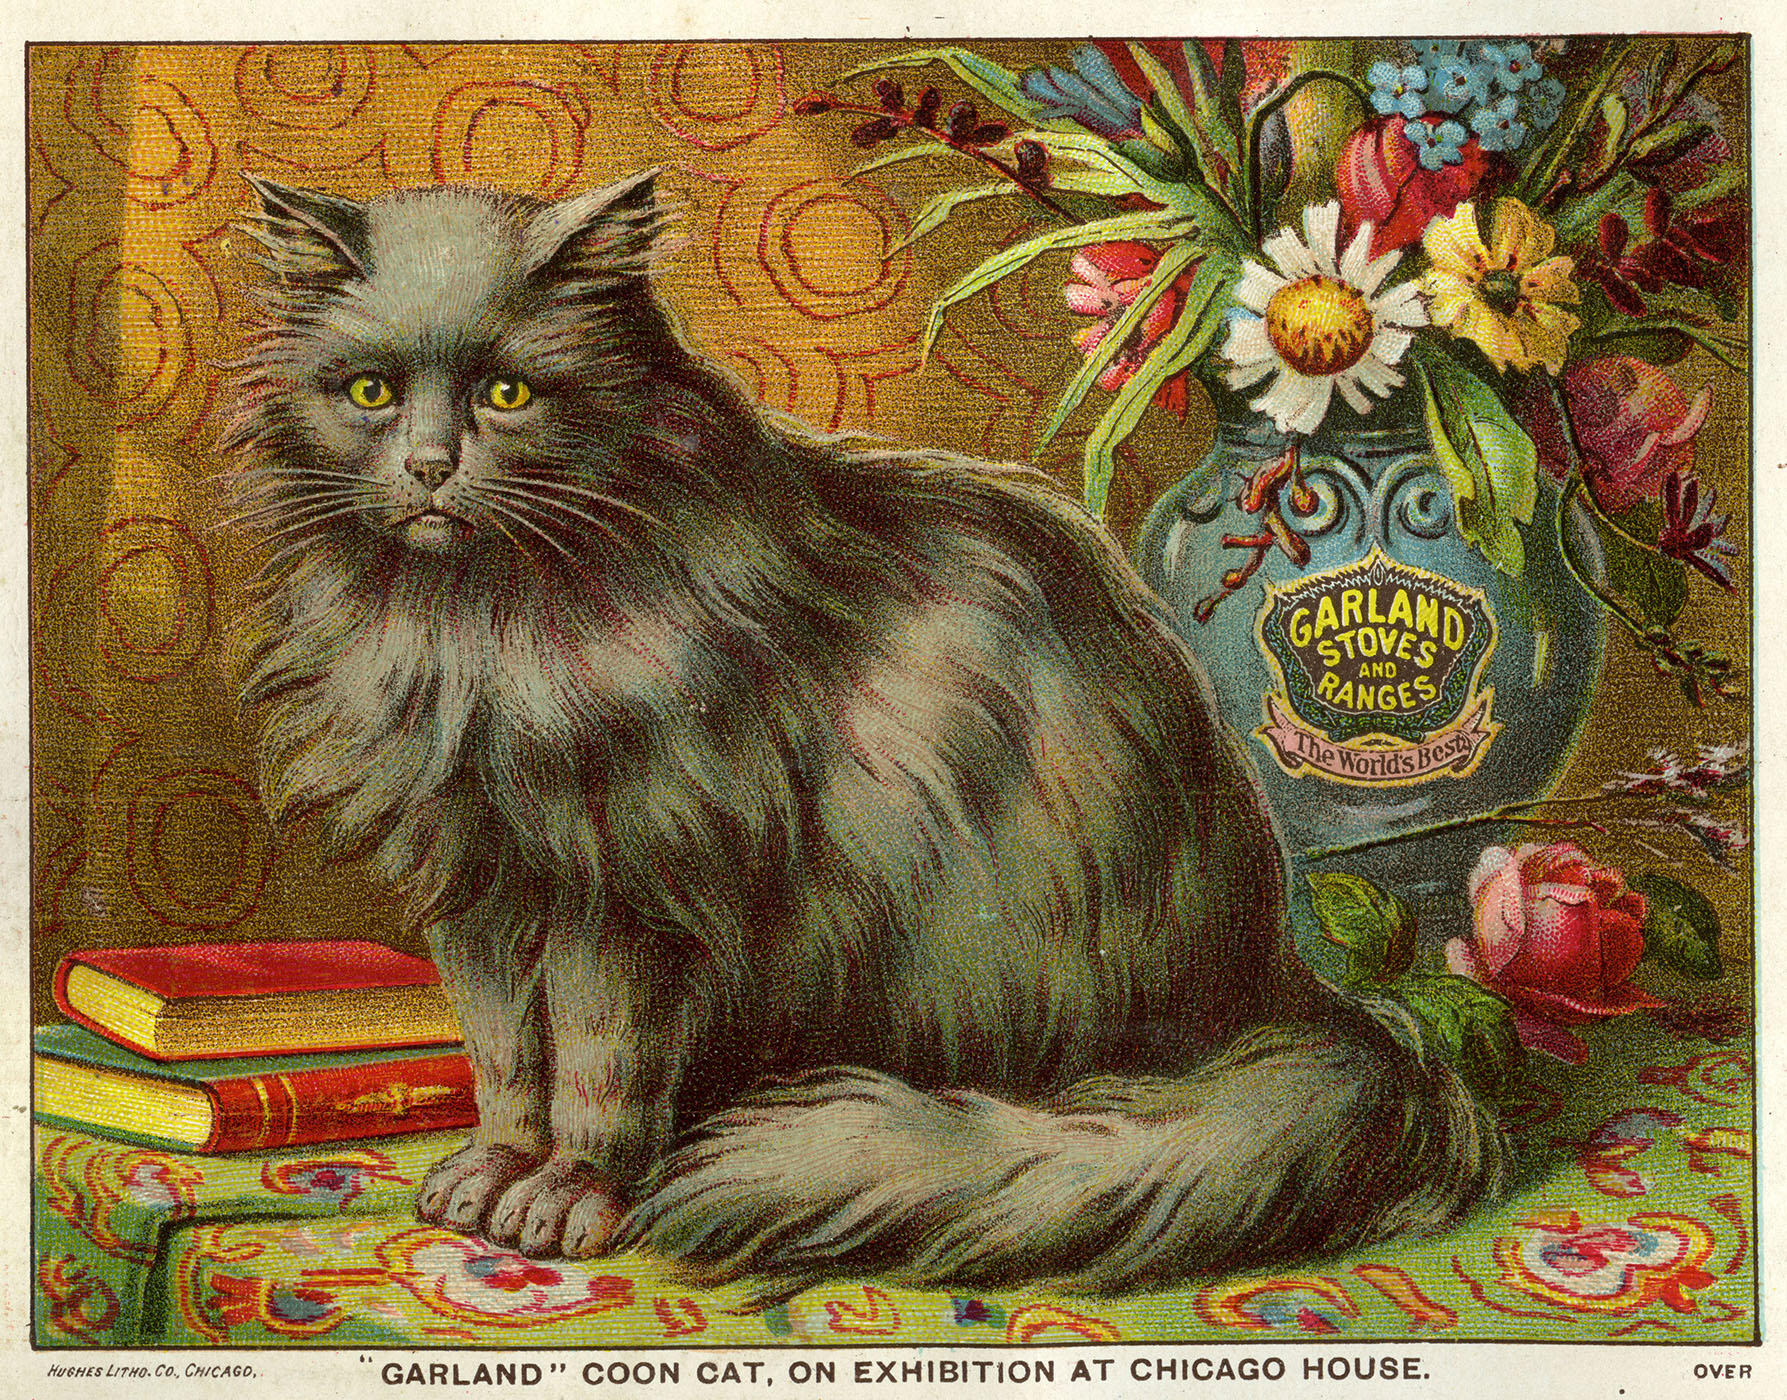 19th century advertisement featuring Maine coon